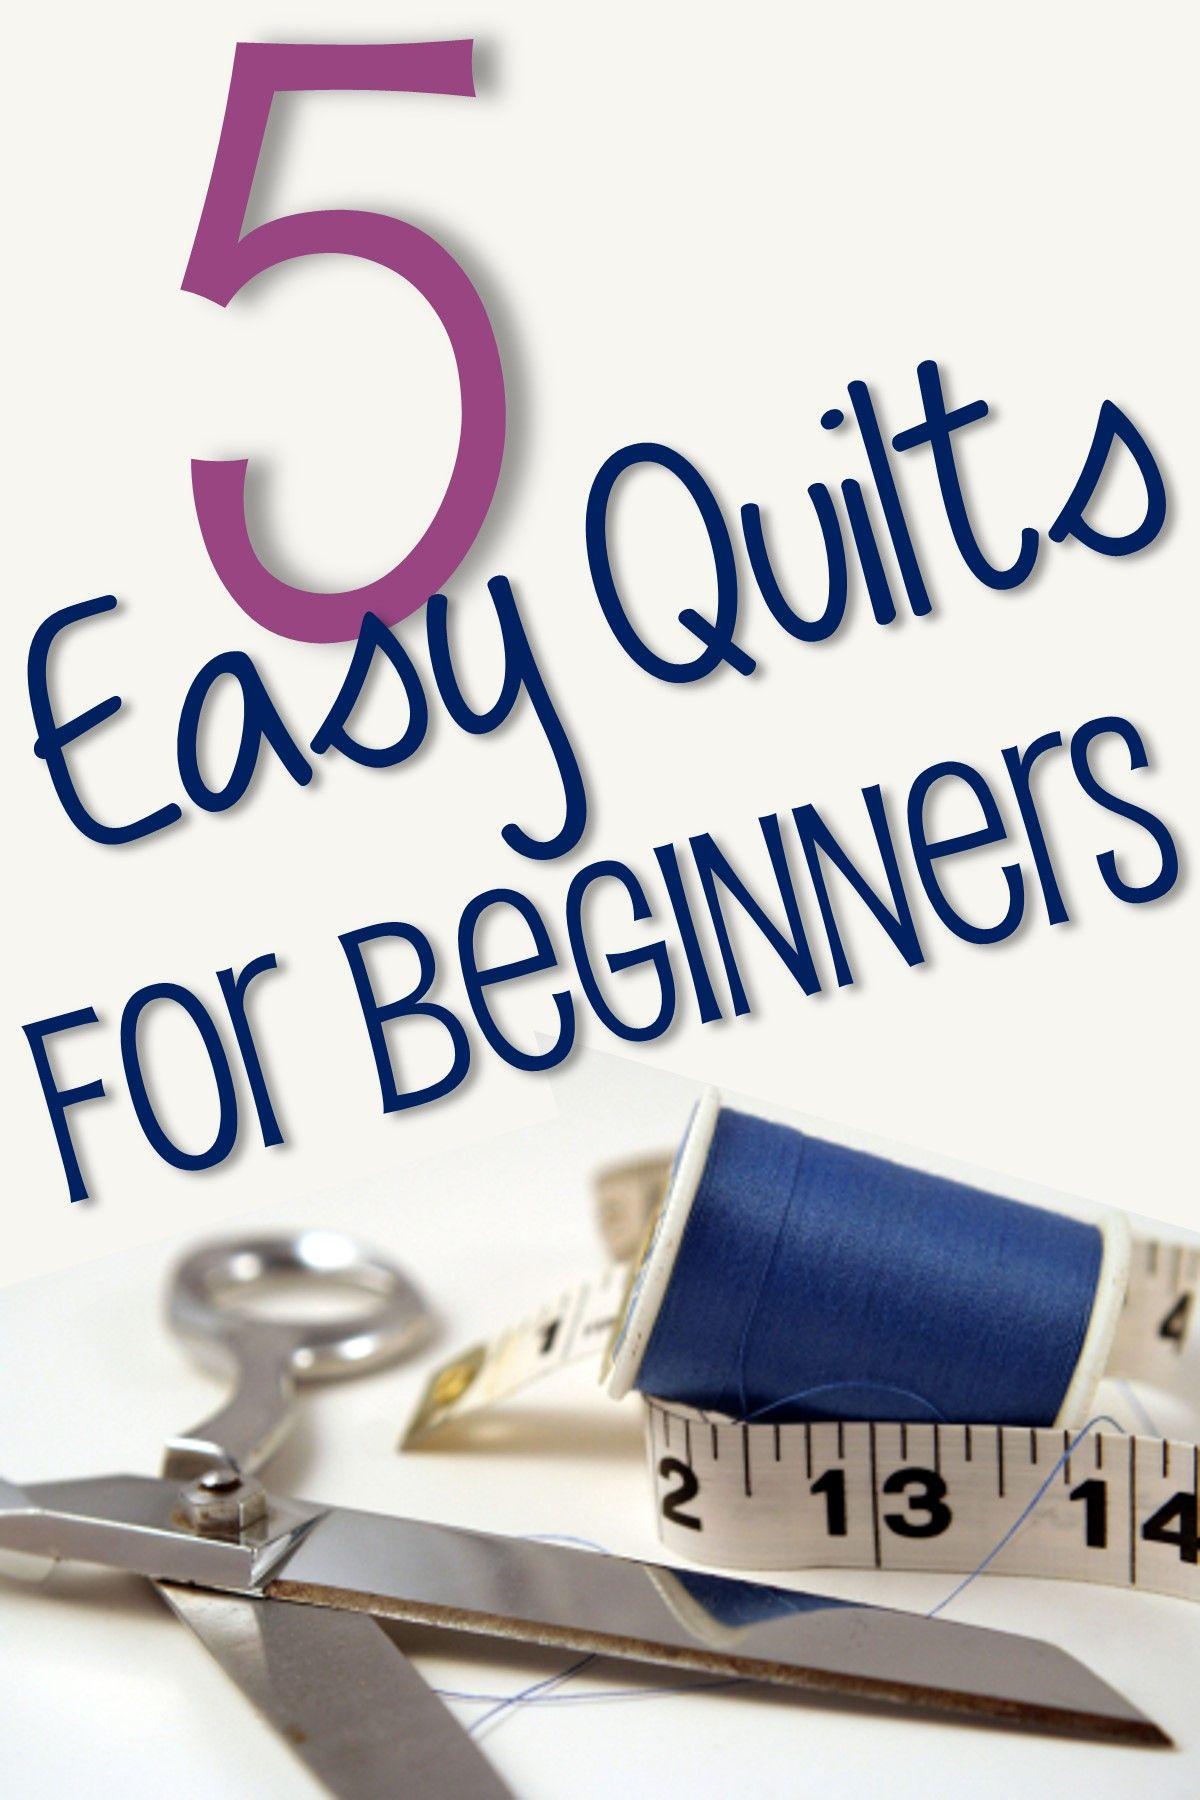 5 Easy Quilt Ideas for Beginners...someday I will start quilting ... : how to do quilting for beginners - Adamdwight.com